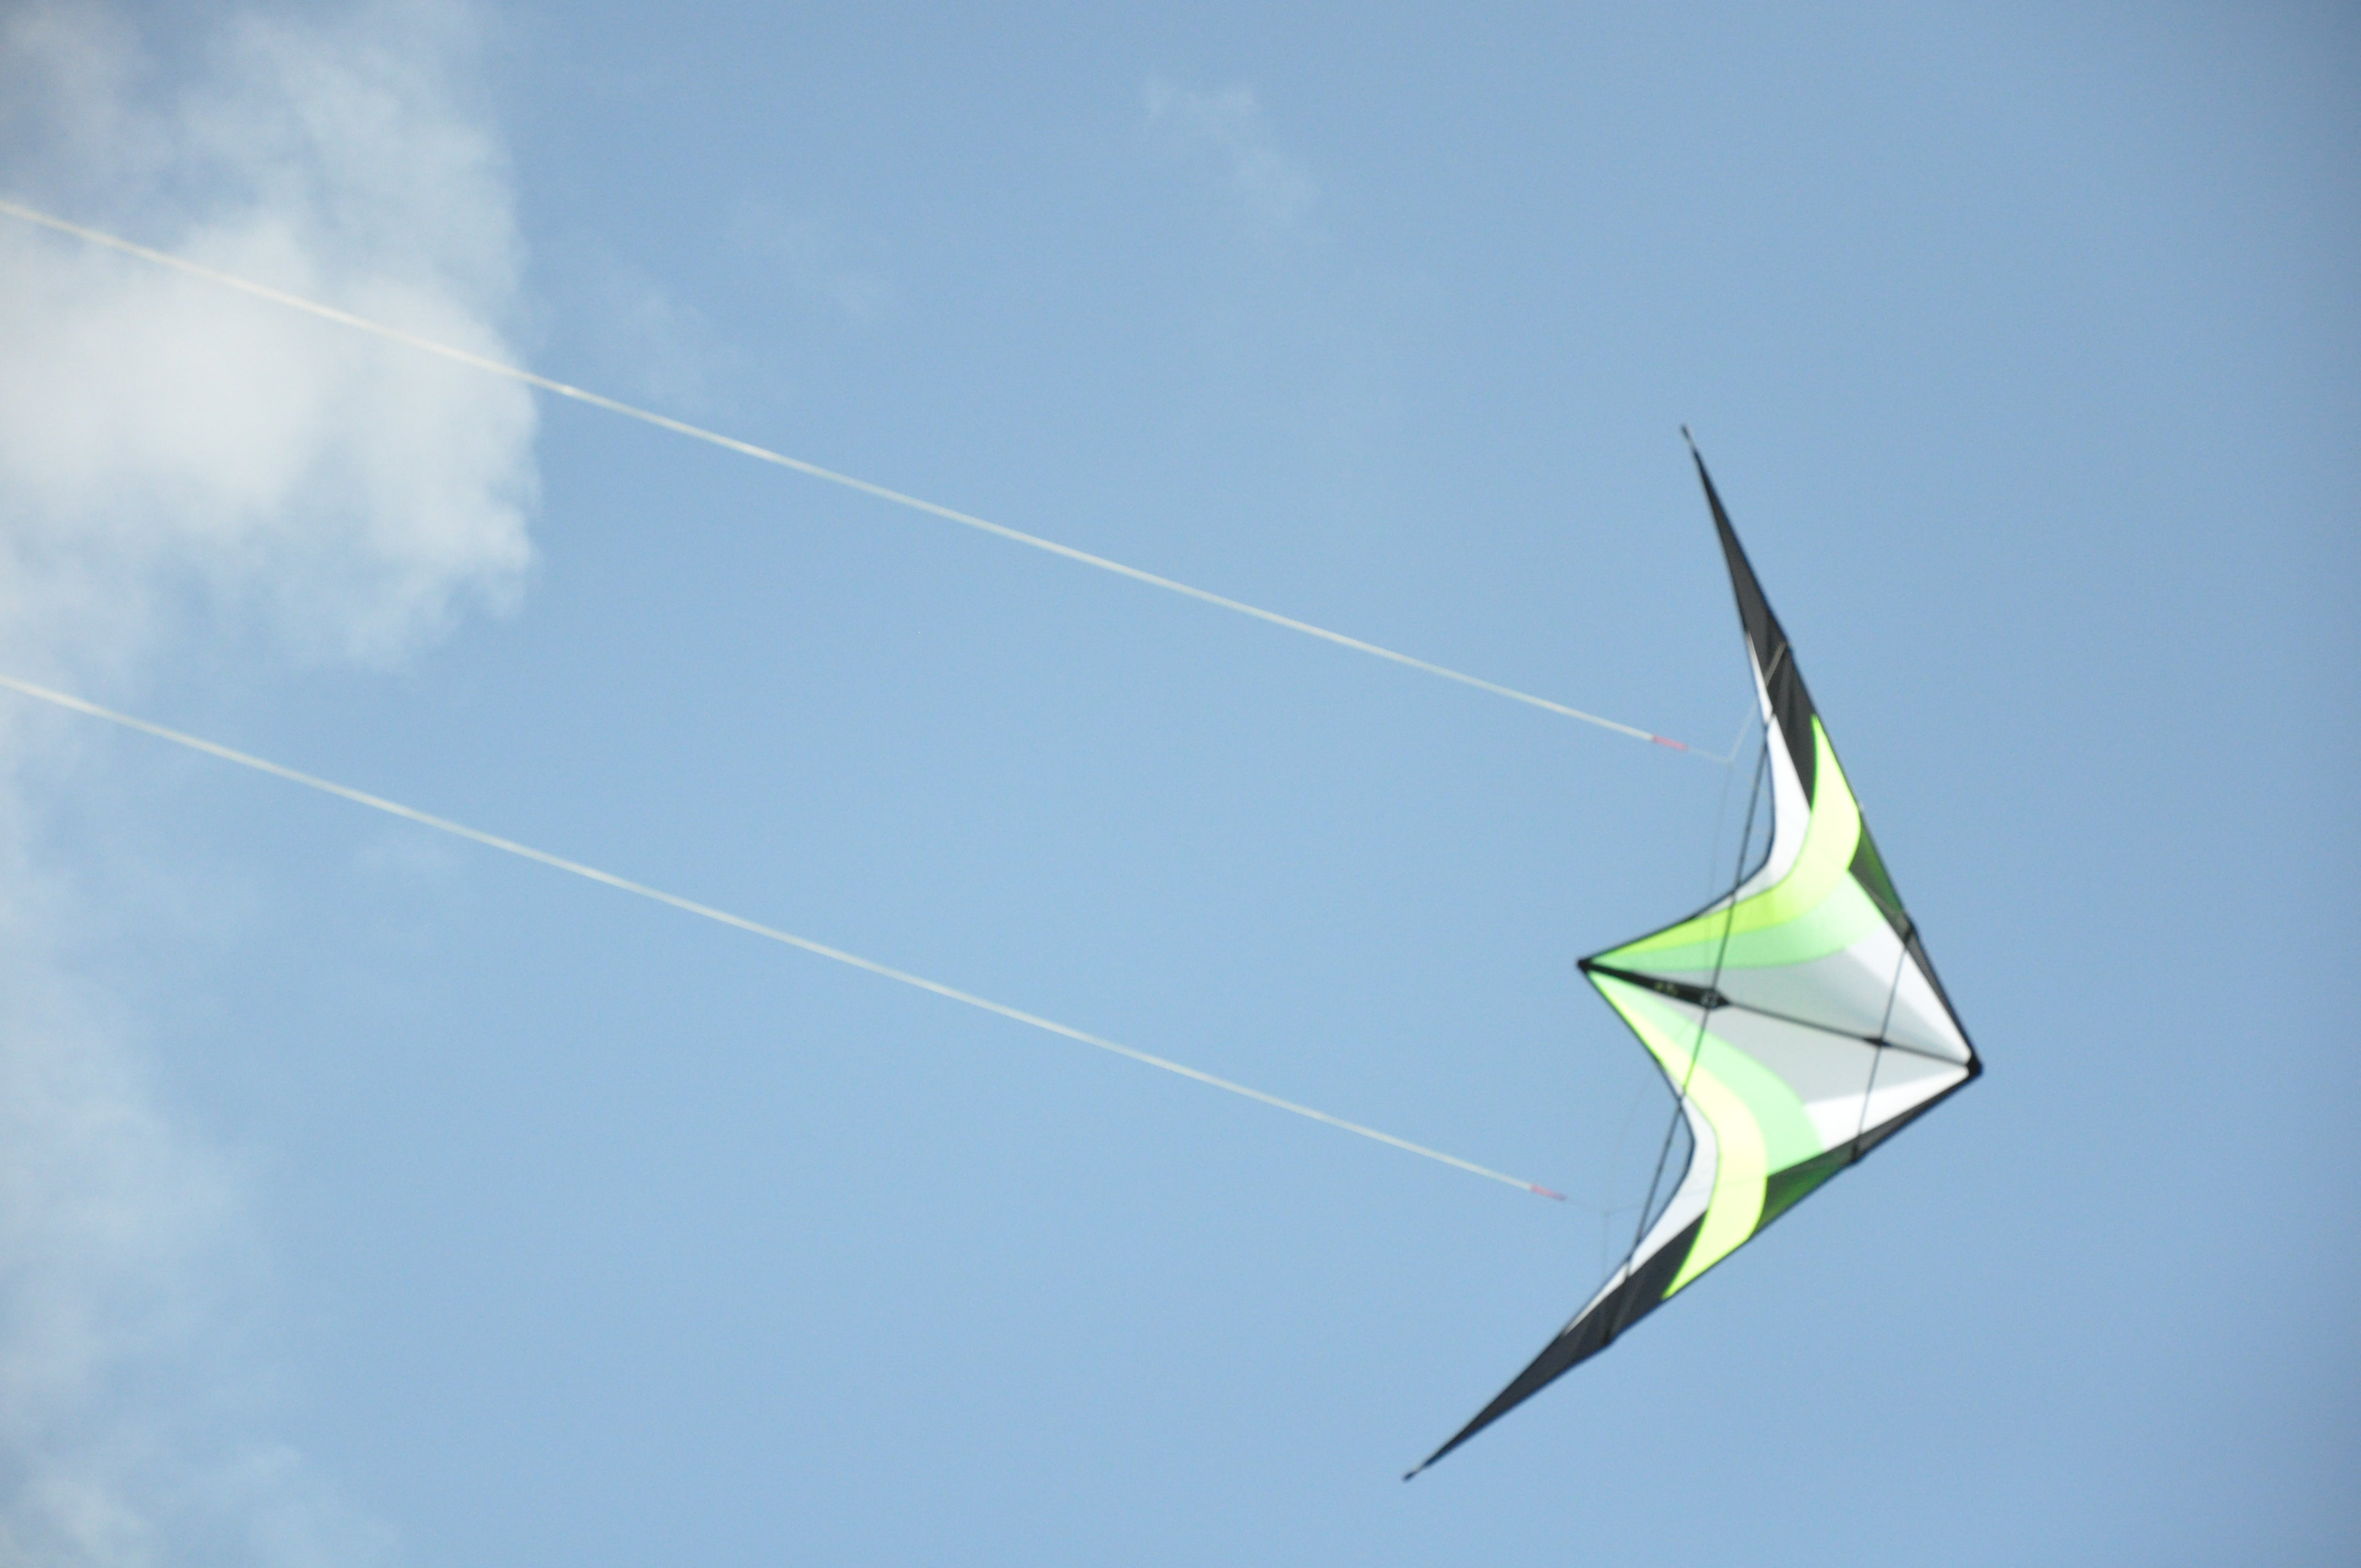 Kite on the plateau of Ally